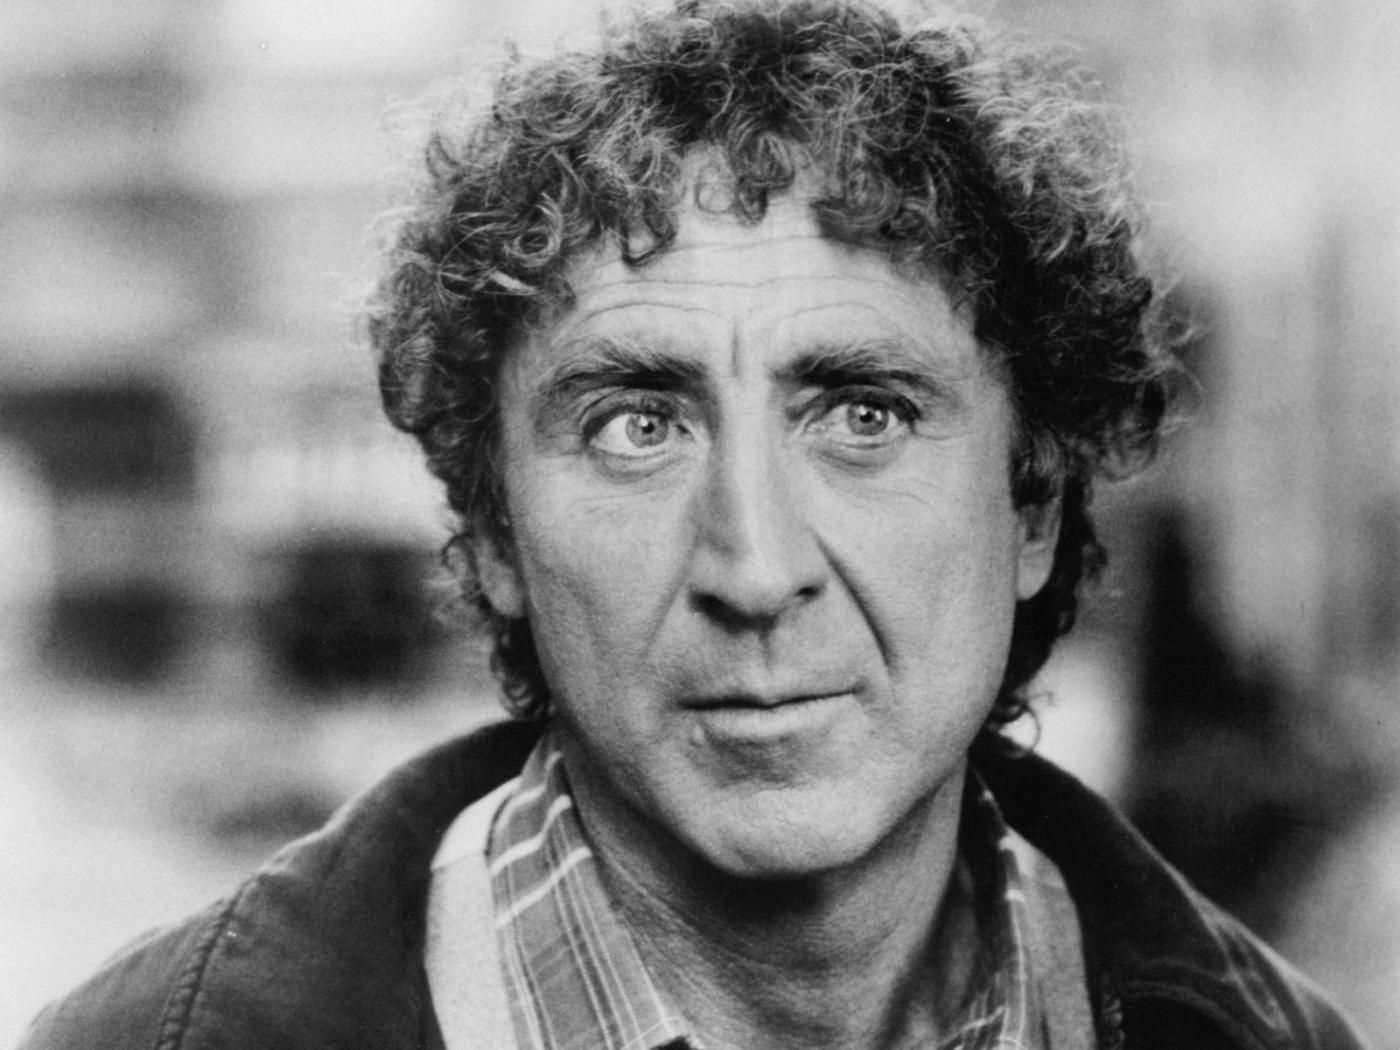 gene wilder pure imagination lyricsgene wilder pure imagination, gene wilder умер, gene wilder pure imagination mp3, gene wilder pure imagination скачать, gene wilder films, gene wilder pure imagination lyrics, gene wilder in young frankenstein, gene wilder википедия, gene wilder wikipedia, gene wilder gilda radner, gene wilder quotes, gene wilder bonnie and clyde, gene wilder doctor who, gene wilder daughter, gene wilder movies, gene wilder best movies, gene wilder young, gene wilder best scene, gene wilder you know morons, gene wilder willy wonka